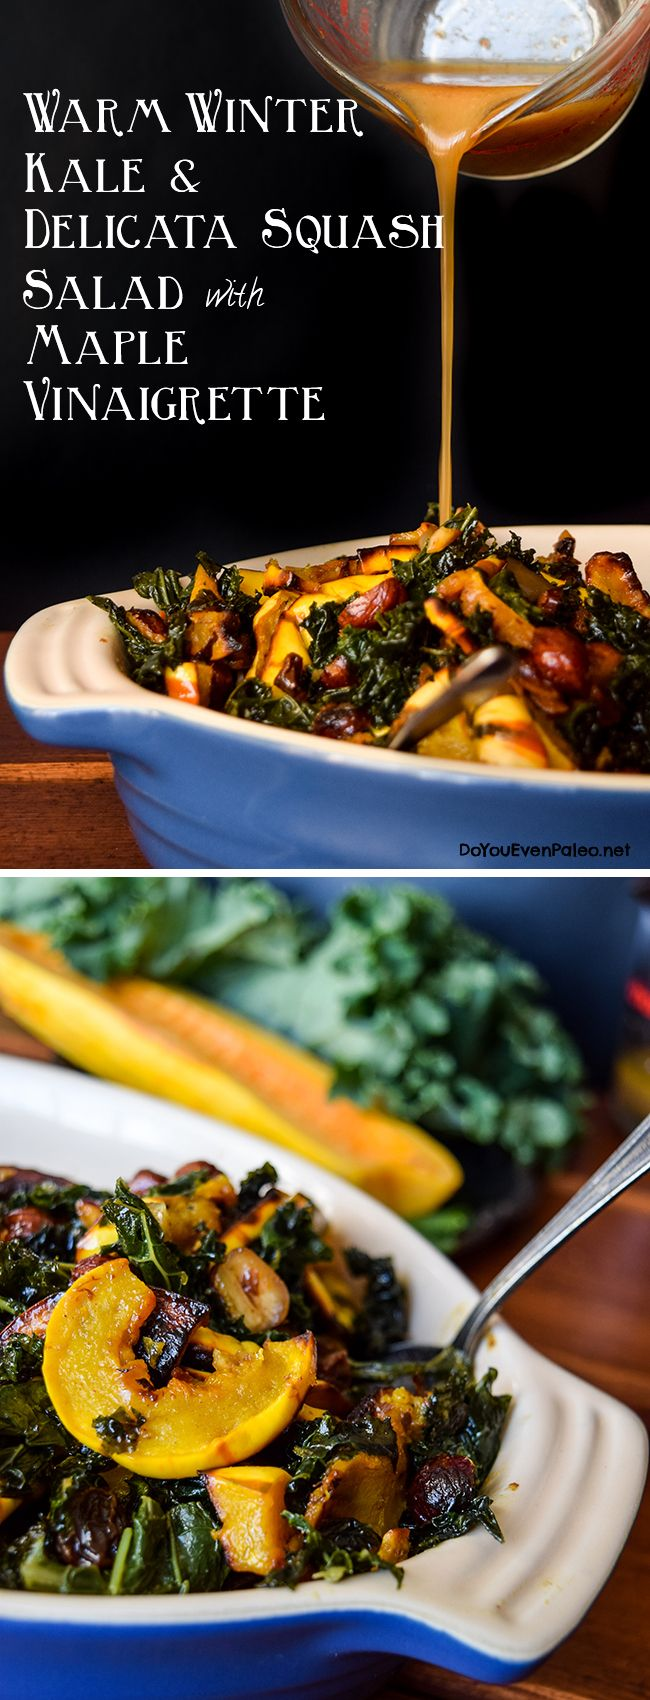 Warm Winter Kale & Delicata Squash Salad with Maple Vinaigrette - this salad can sit in the fridge for up to 5 days before servings, so it's perfect for meal prep, dinner parties, or potlucks! | DoYouEvenPaleo.net